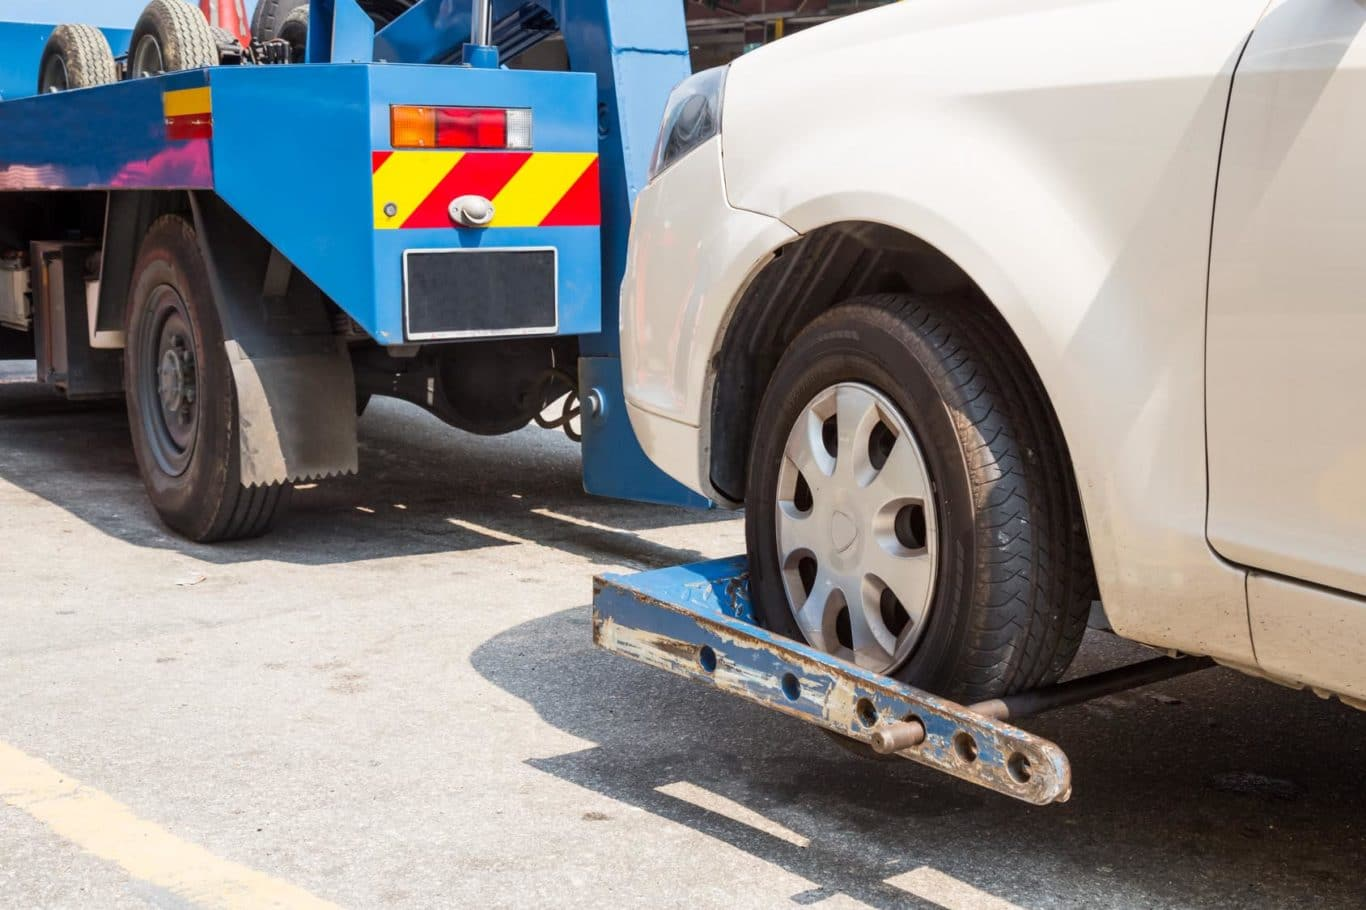 Kilberry expert Car Recovery services